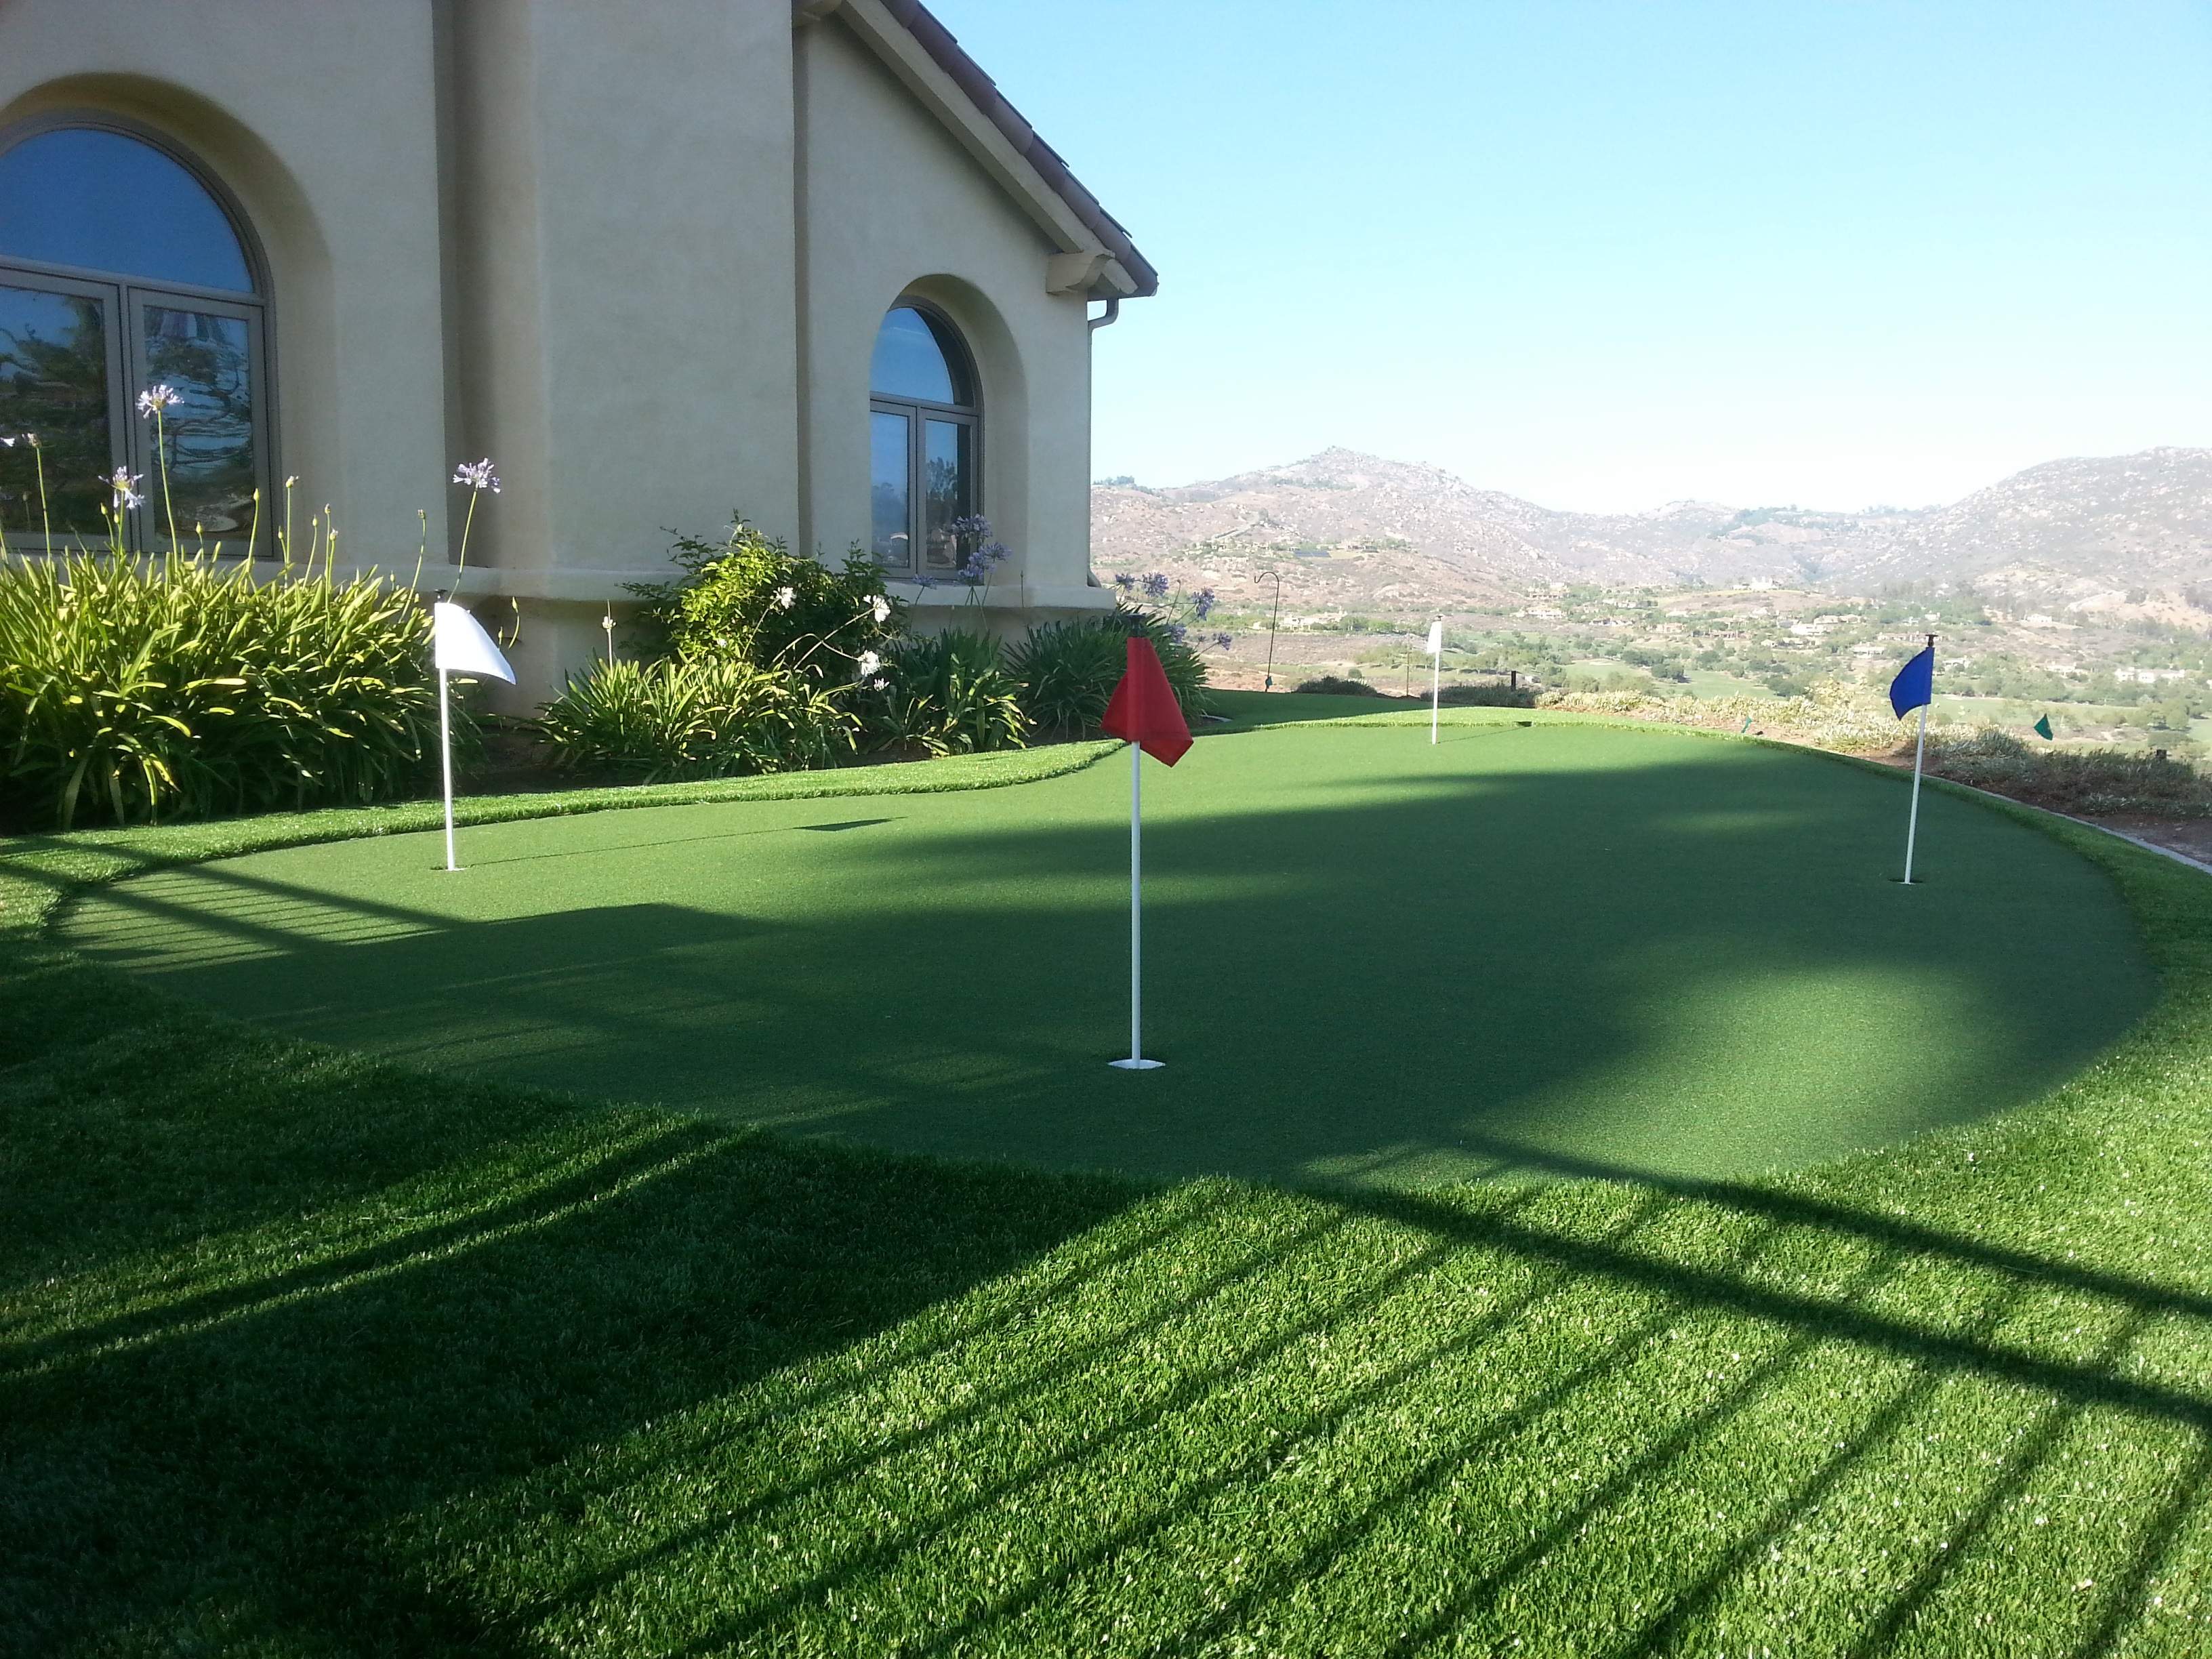 Artificial Grass Landscape Artificial grass chula vista artificial turf chula vista ca workwithnaturefo